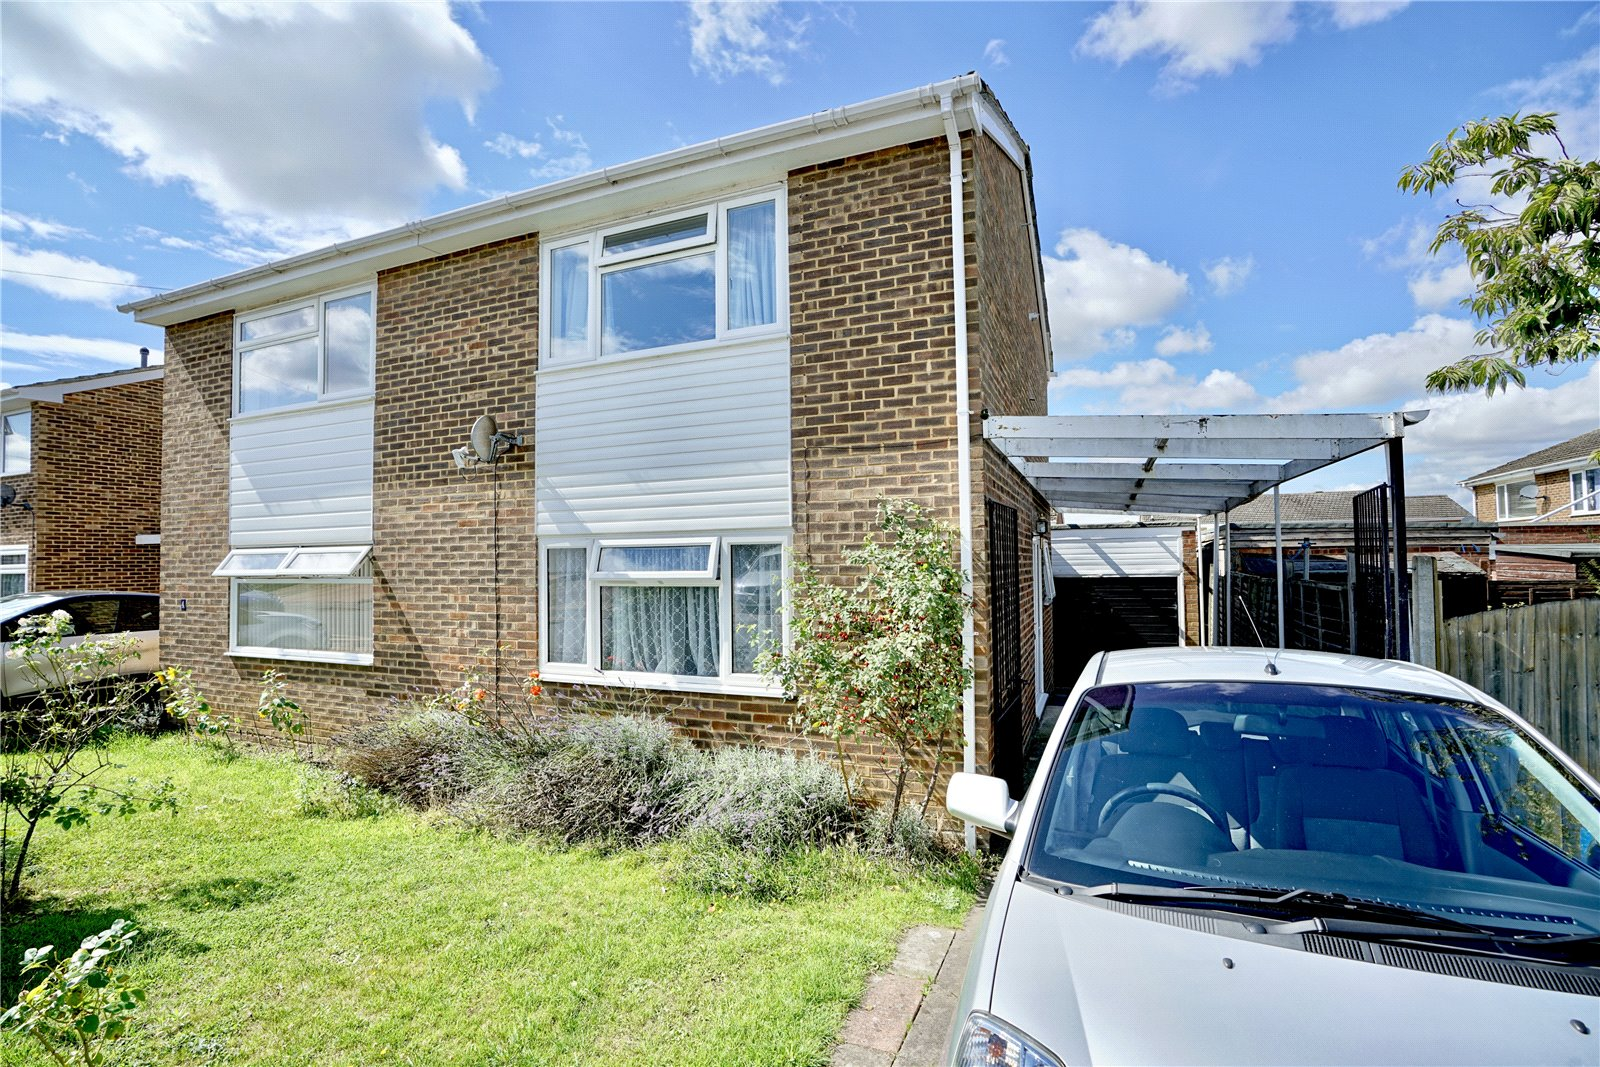 2 bed house for sale in Eynesbury, Andrew Road, PE19 2QE, PE19